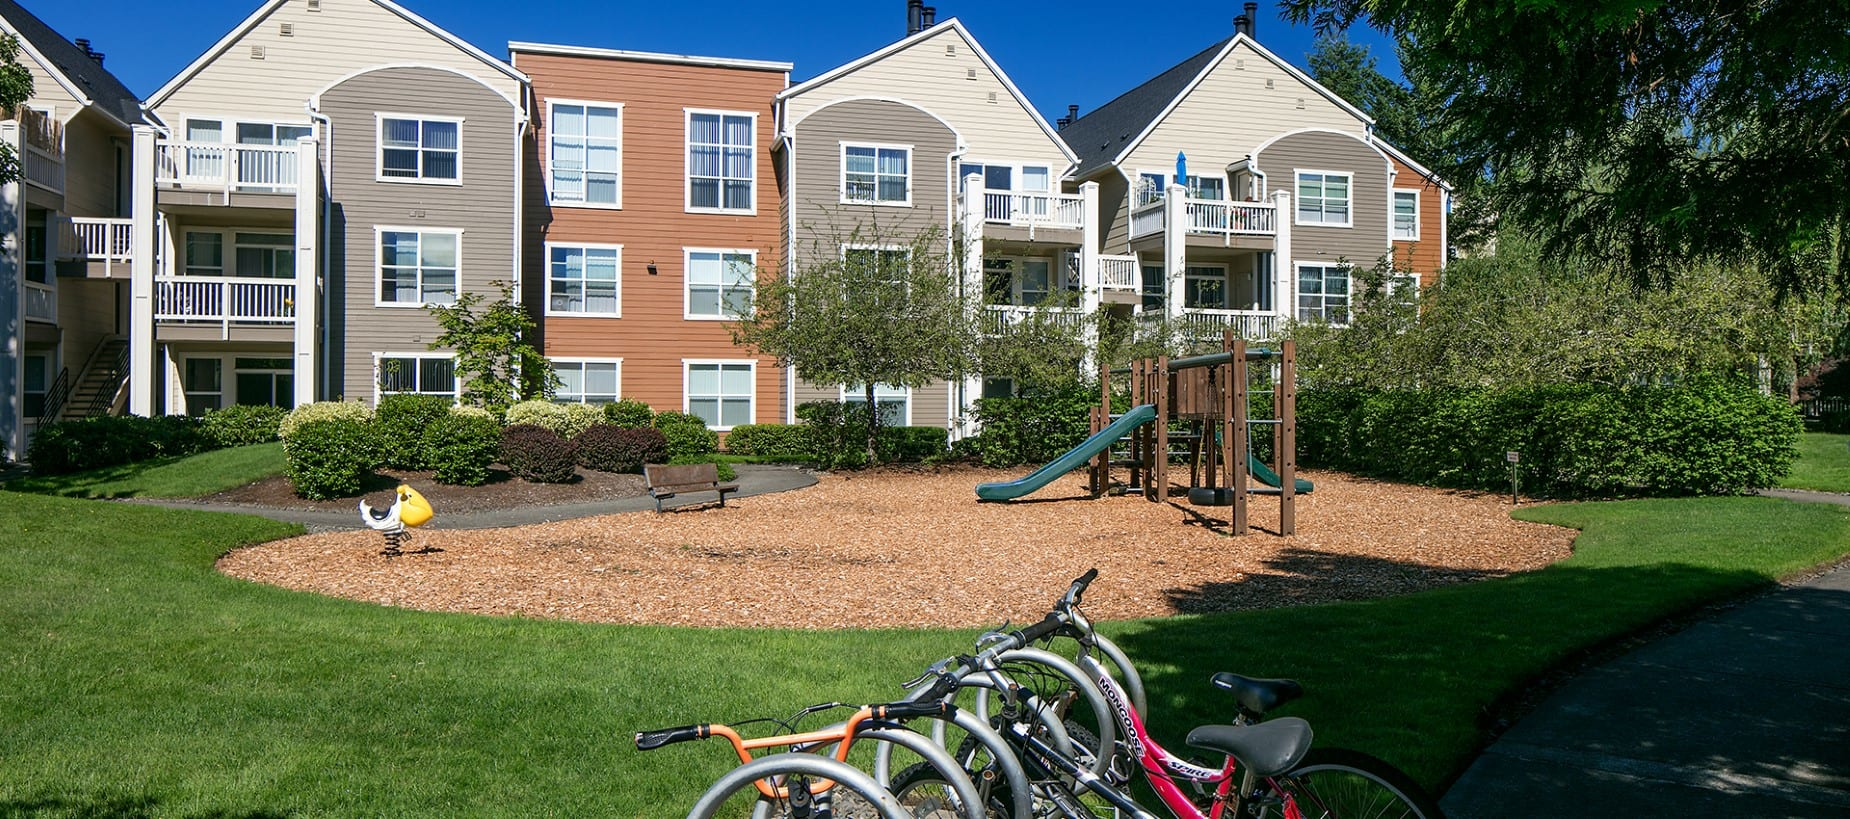 Playground at Center Pointe Apartment Homes in Beaverton